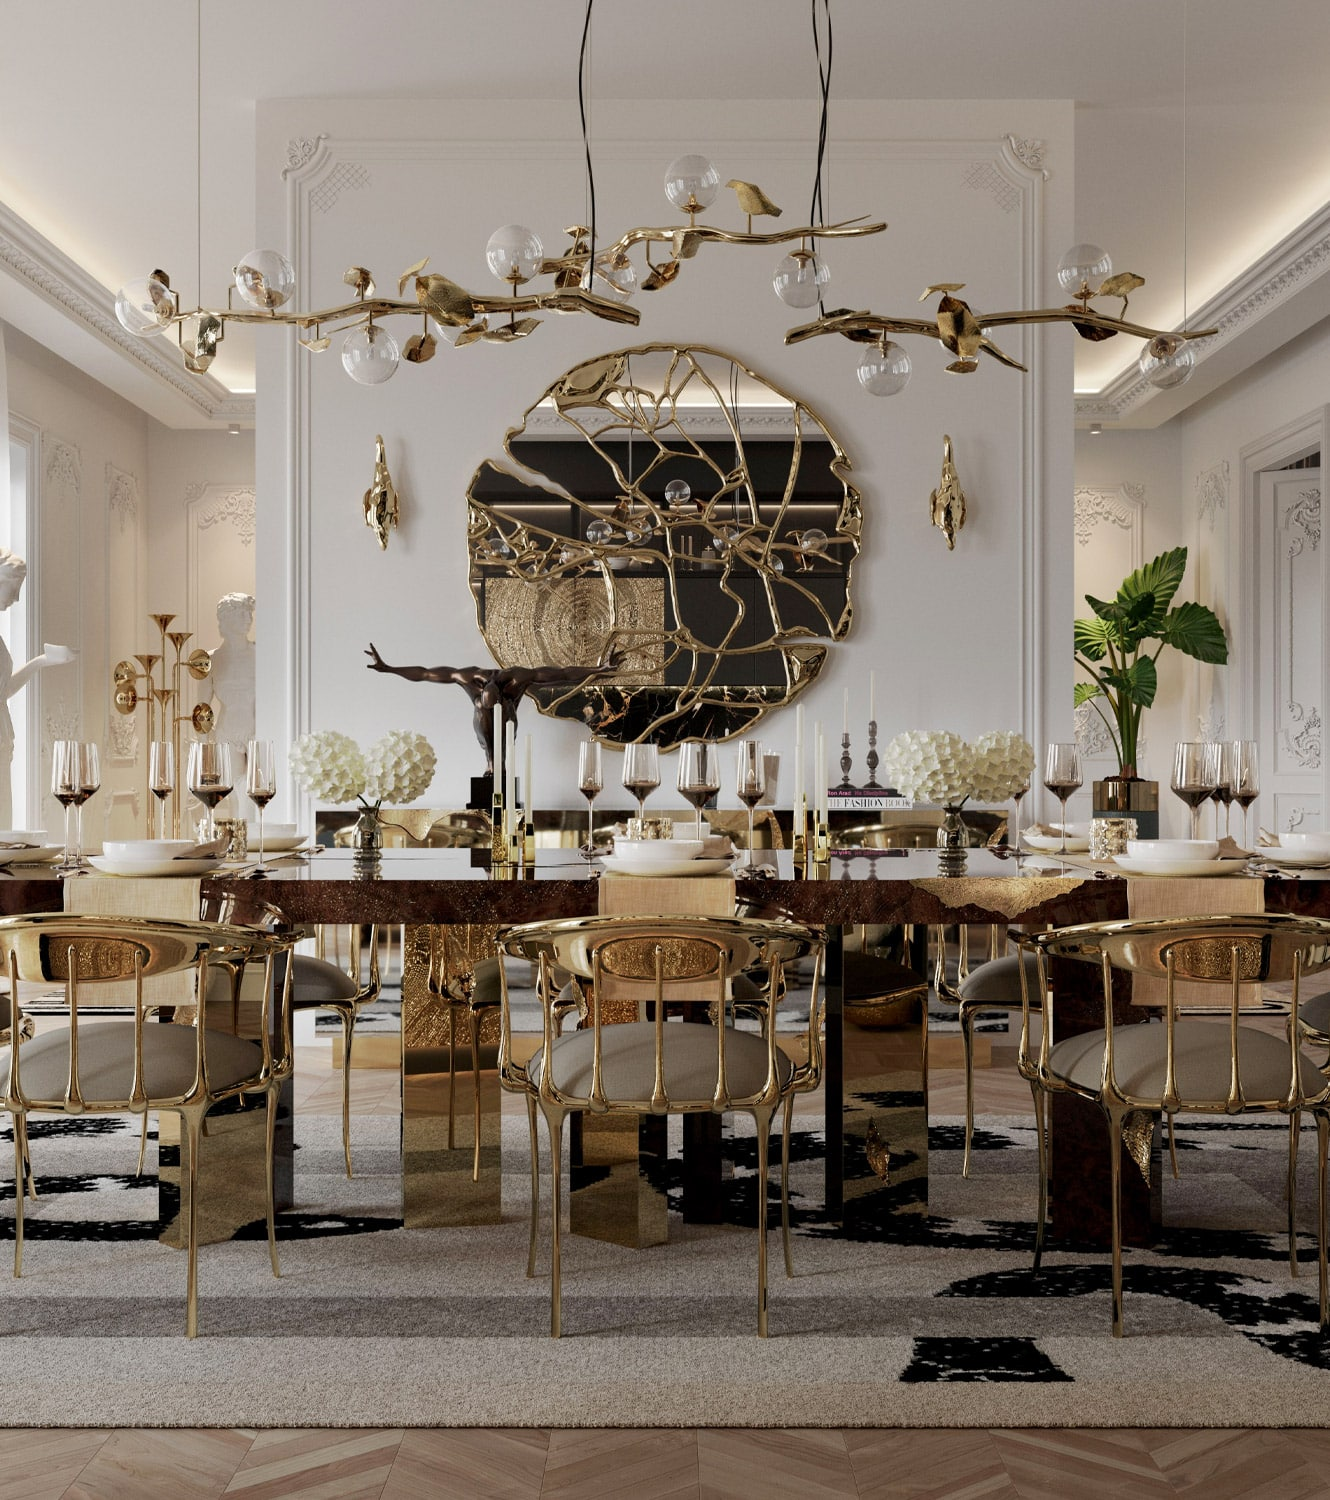 dining room - BOCA DO LOBO'S DELUXE PENTHOUSE IN THE HEART OF PARIS